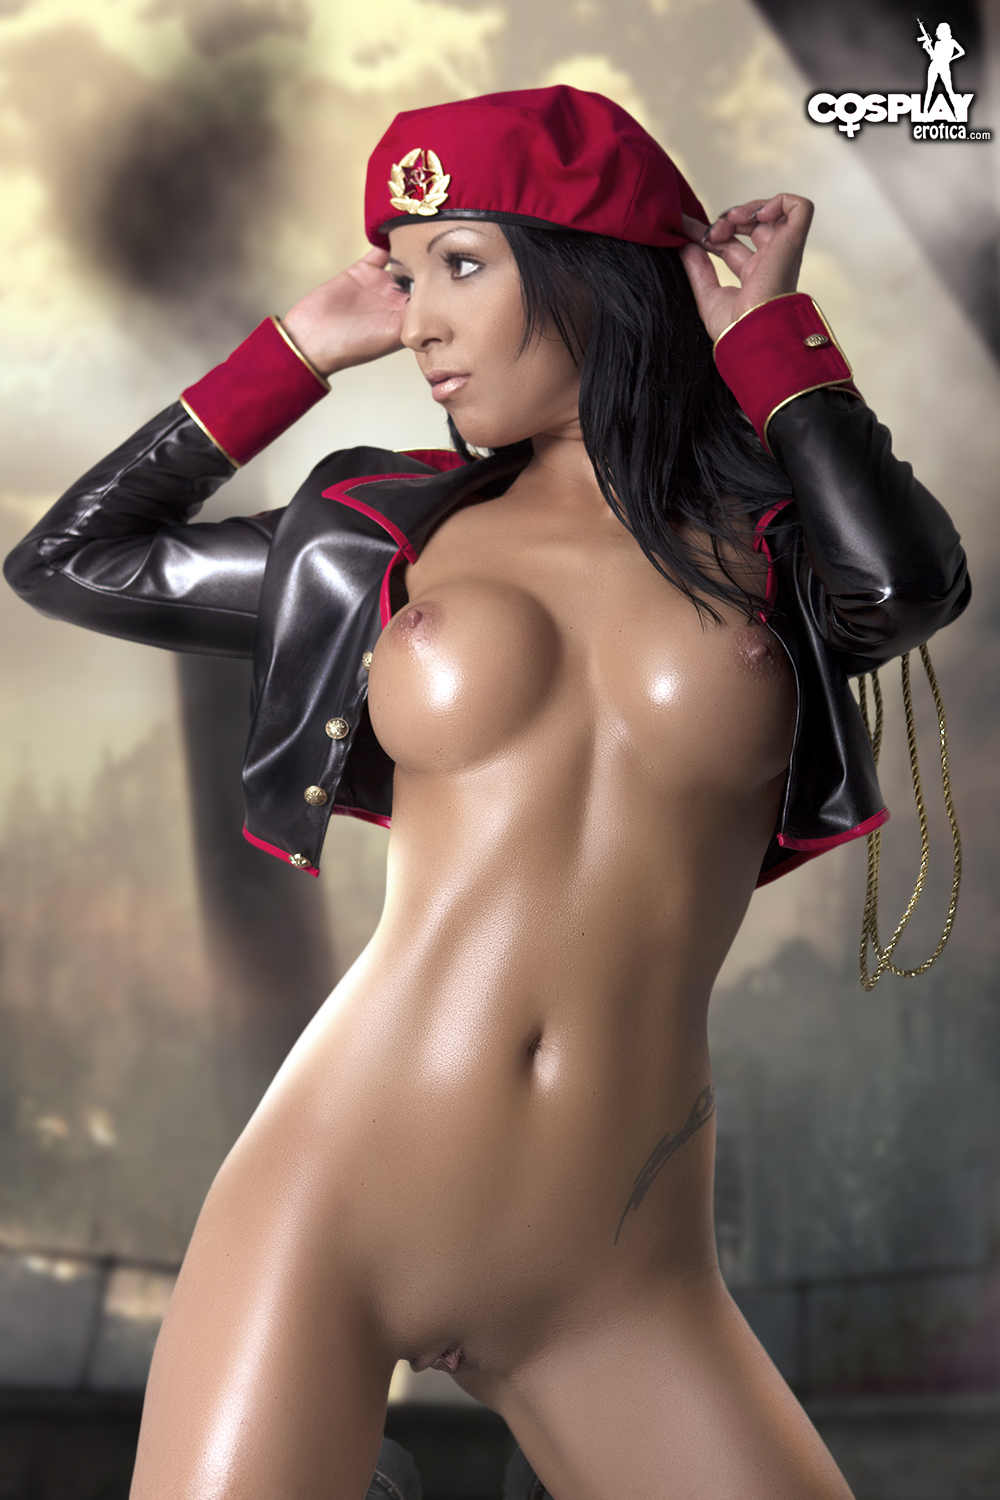 cosplay Hot porn sexy girl